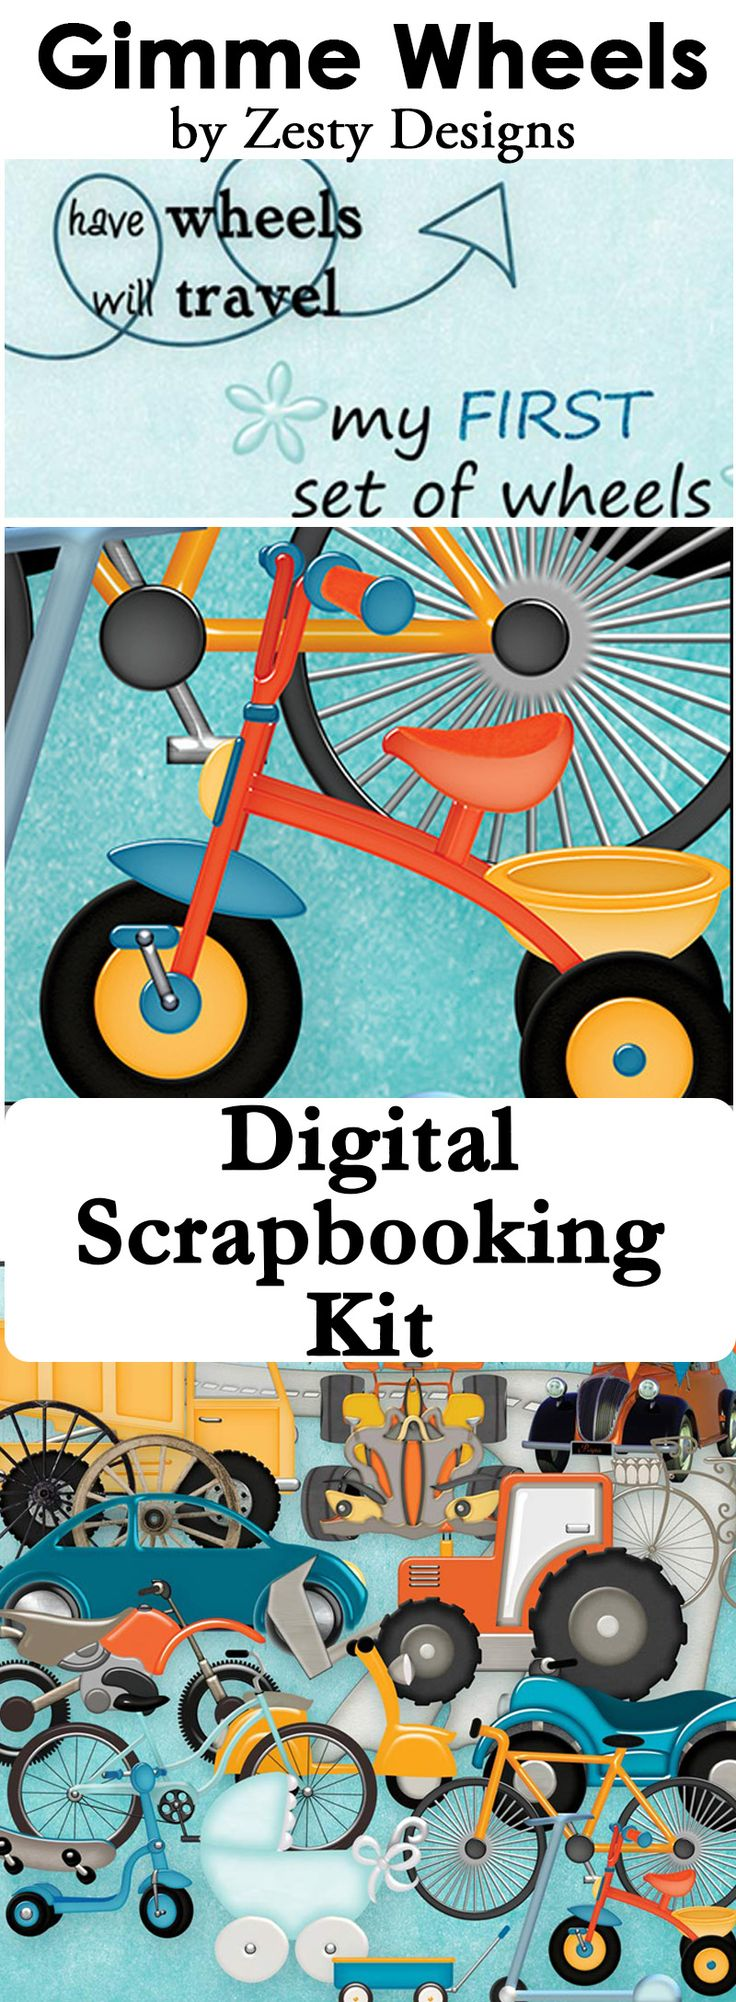 Got Boy Photos To Scrap?  Gimme Wheels by Zesty Designs has tractors, bicycles, cars, and so much more.  This digital scrapbook kit is great for pages or create your own printable party favors.